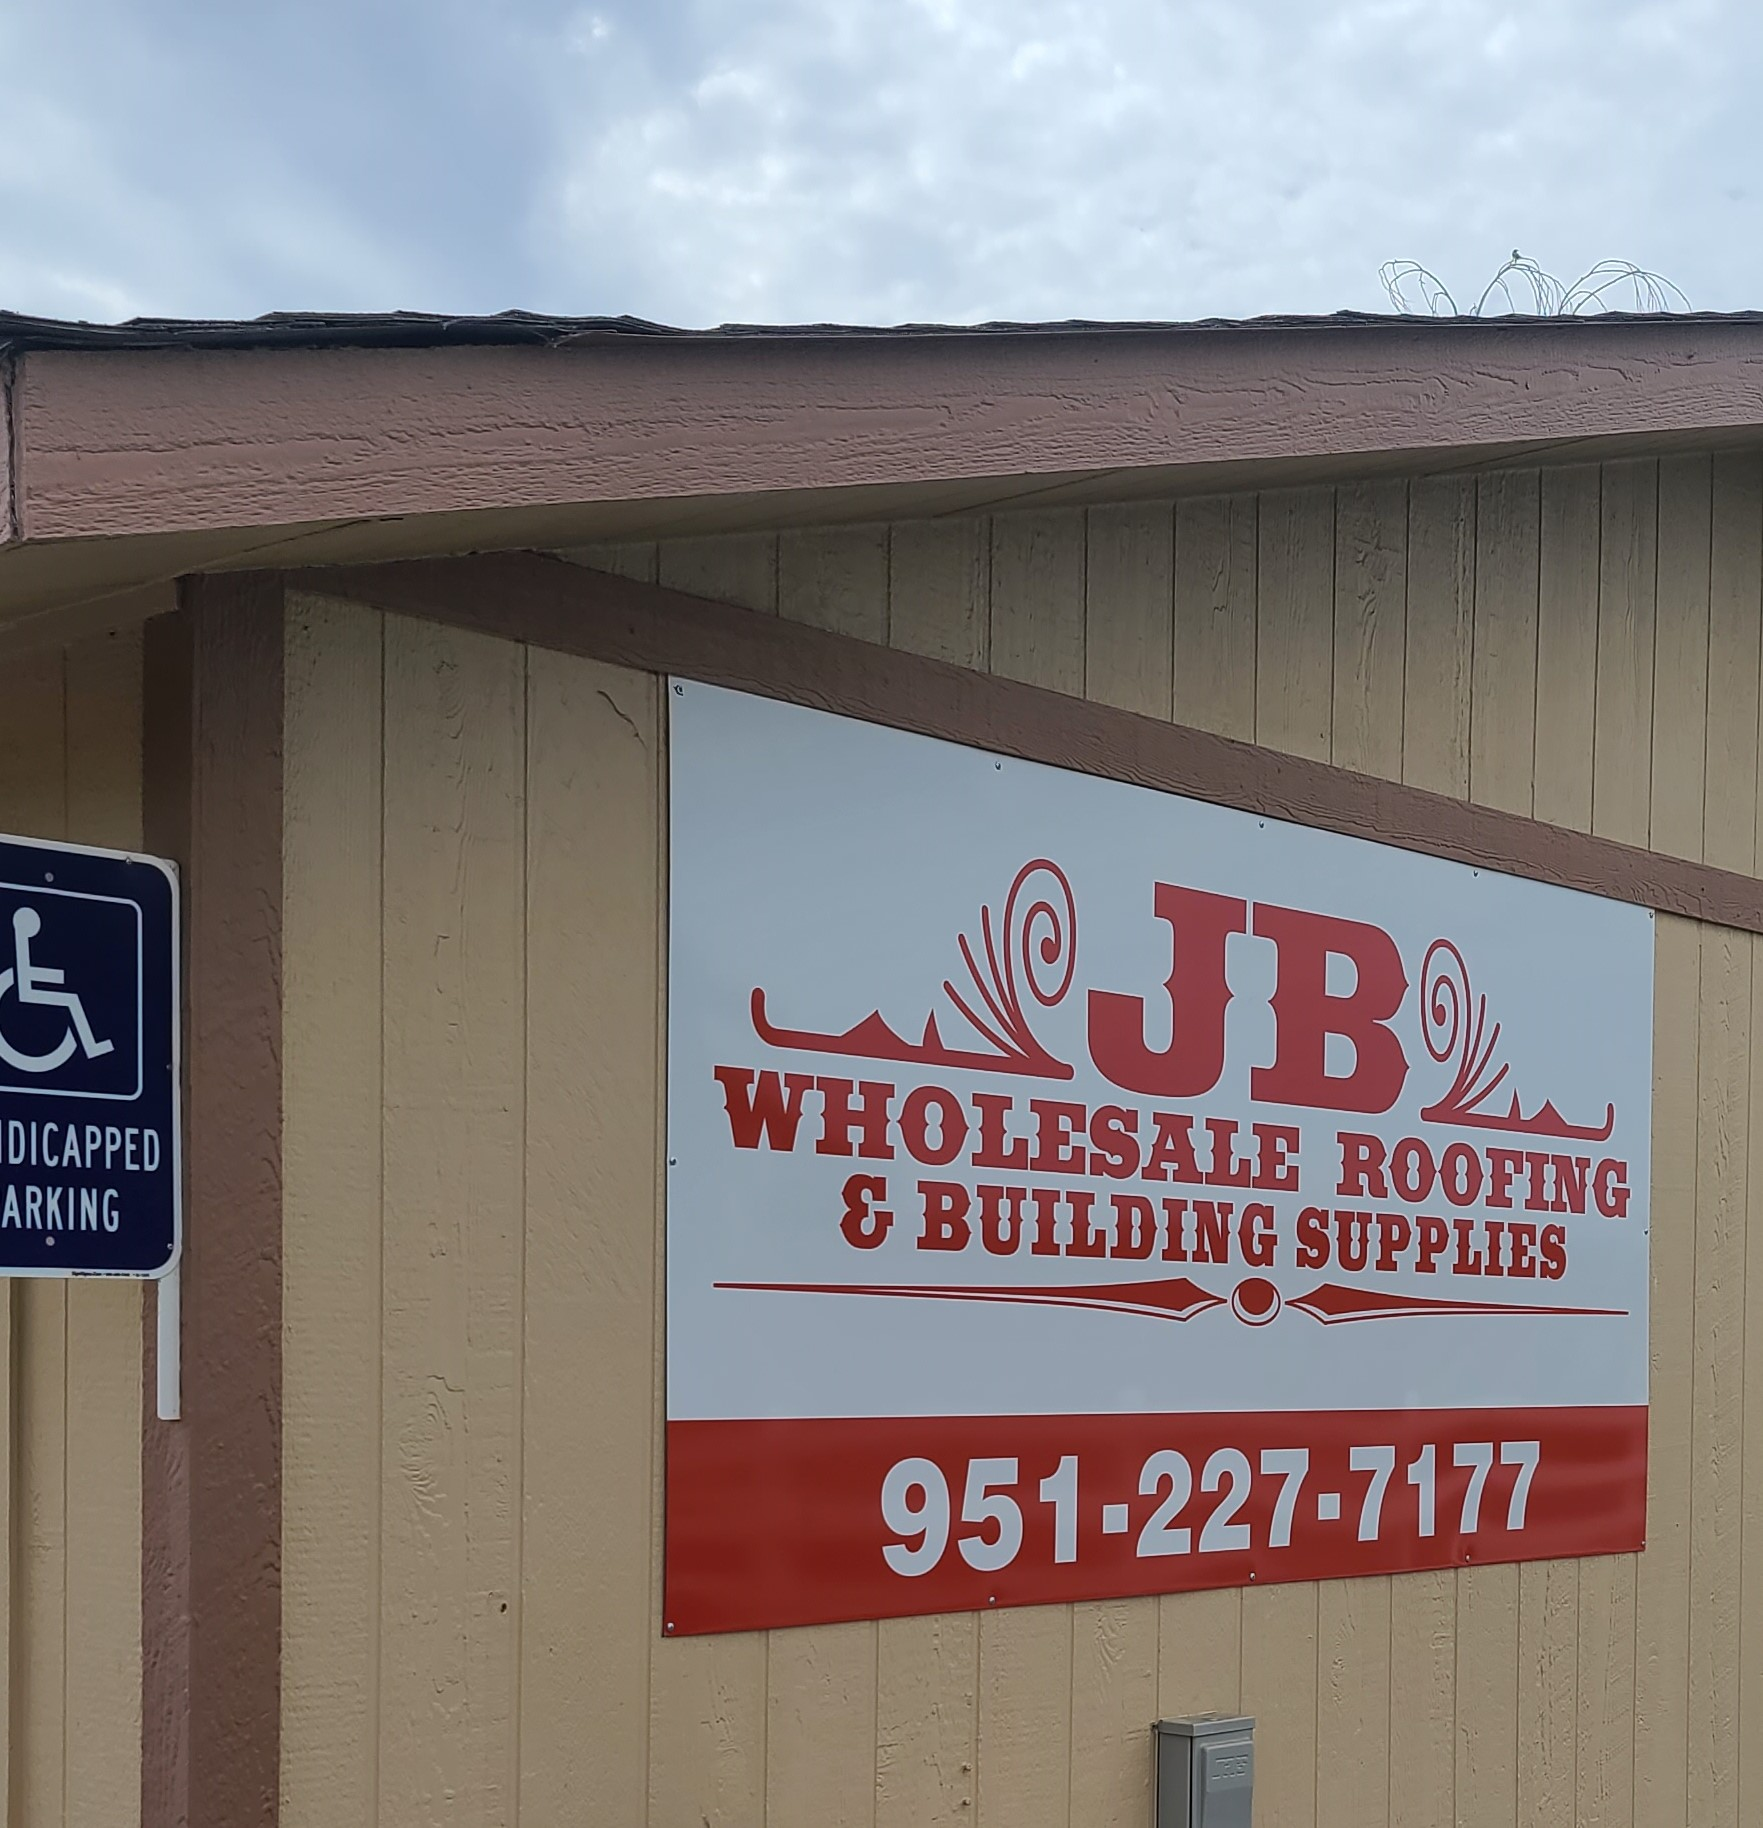 More from our sign package for JB Wholesale Roofing's Murrieta location, a metal panel building sign that displays their brand logo and its contact details.